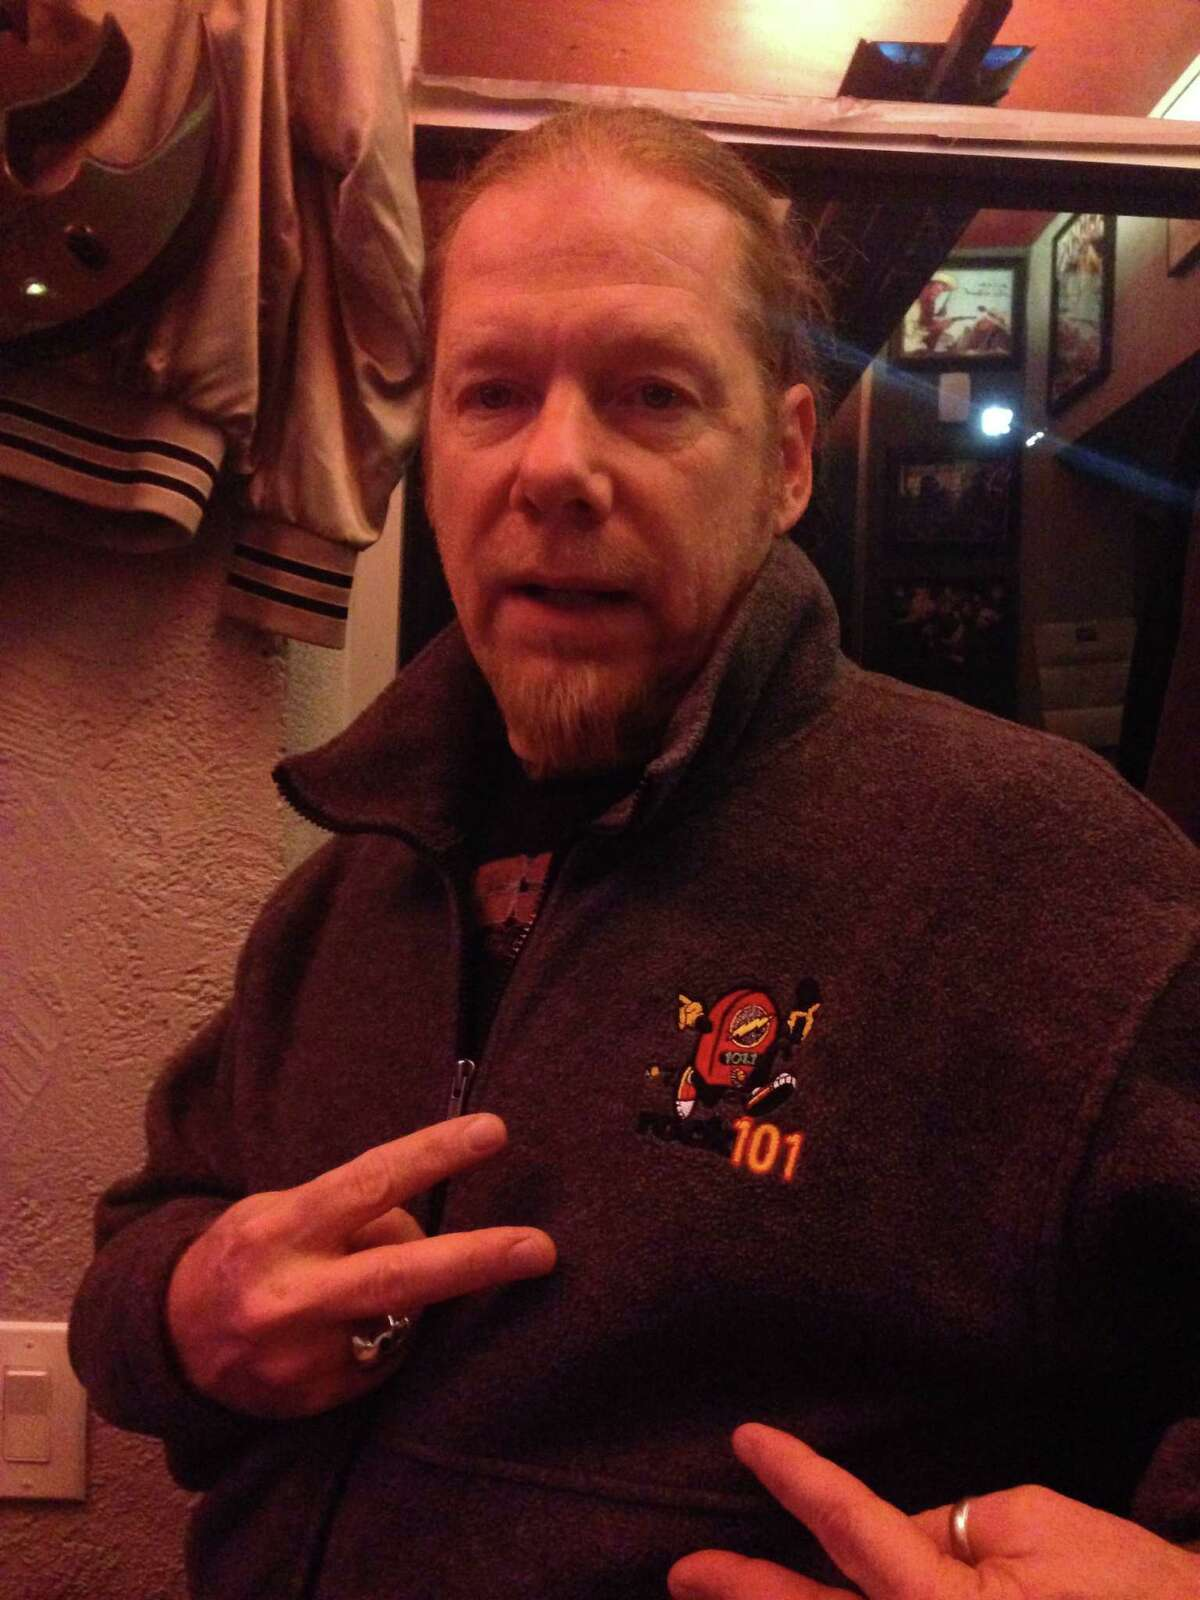 Wednesday night on his radio show, former KLOL jock Outlaw Dave Andrews talked about the last day of the iconic Houston rock station. Here he is posing in a fleece coat from the station.